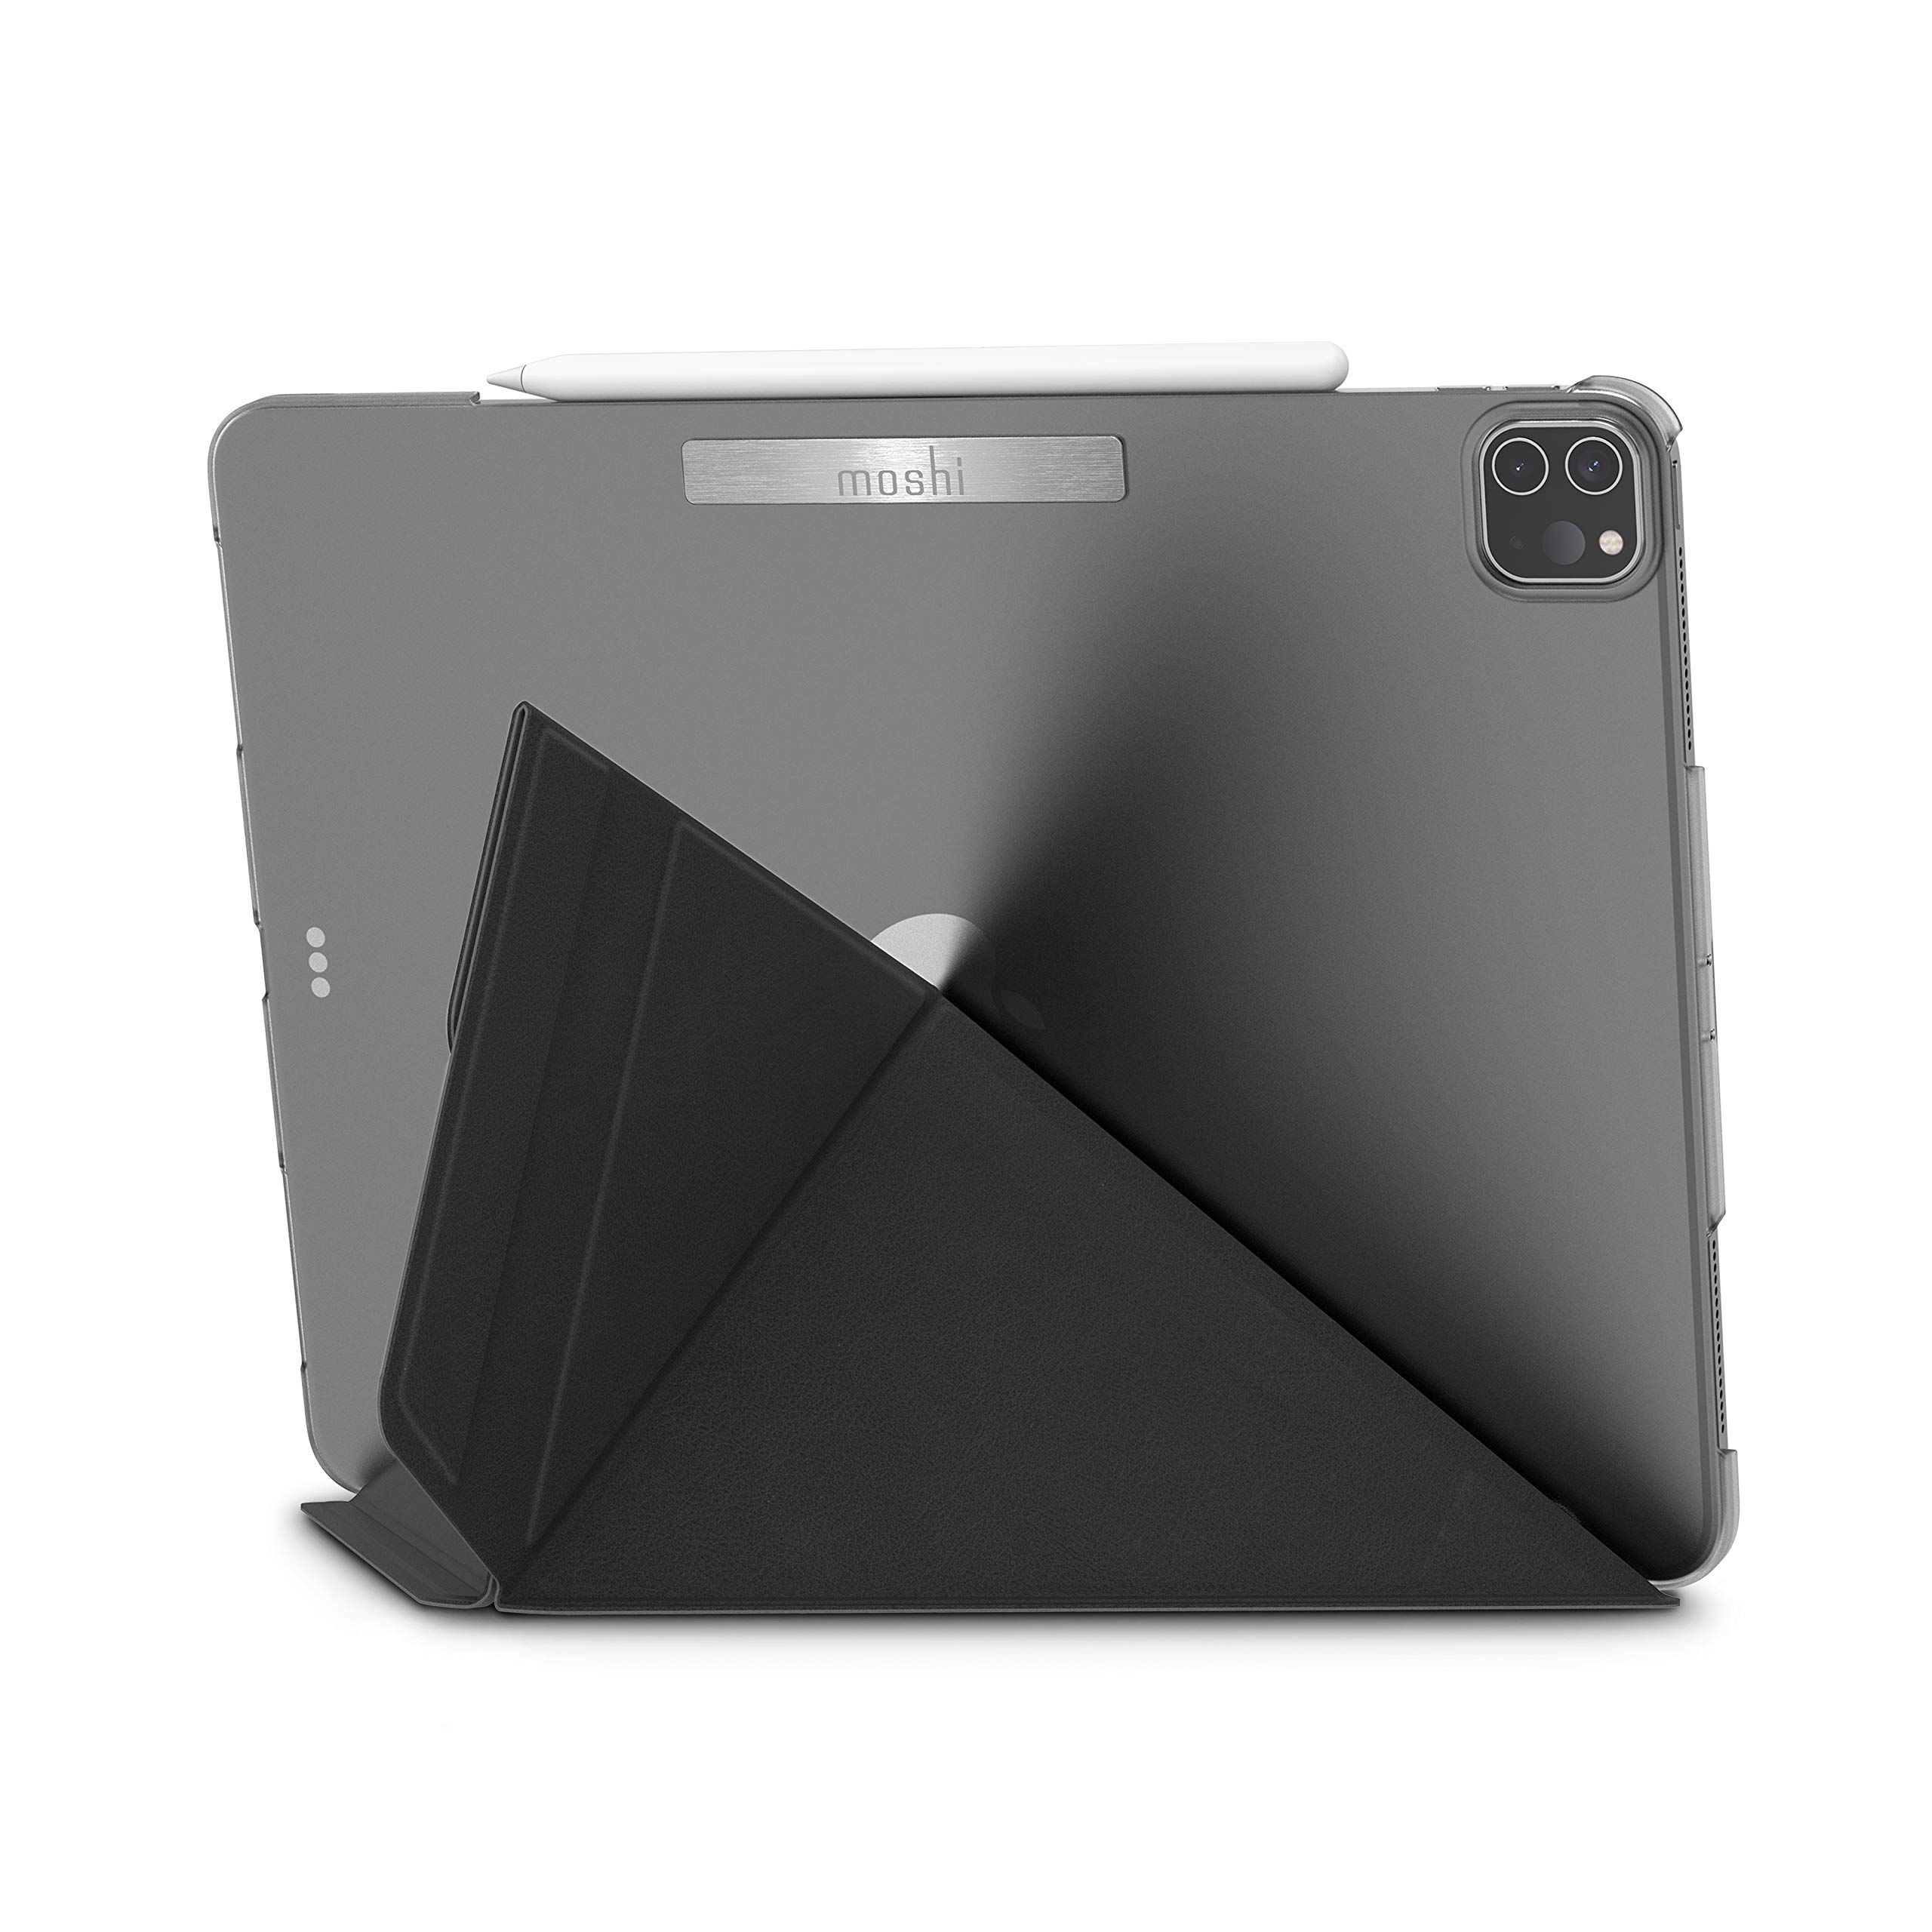 """Moshi VersaCover Case for iPad Pro 12.9"""" 2020 4th Gen & 2019 3rd Gen, Folding Cover with 3-Viewing Angles, Support iPad Pencil Charging, Auto Sleep/Wake, Magnetic Closure, Charcoal Black"""